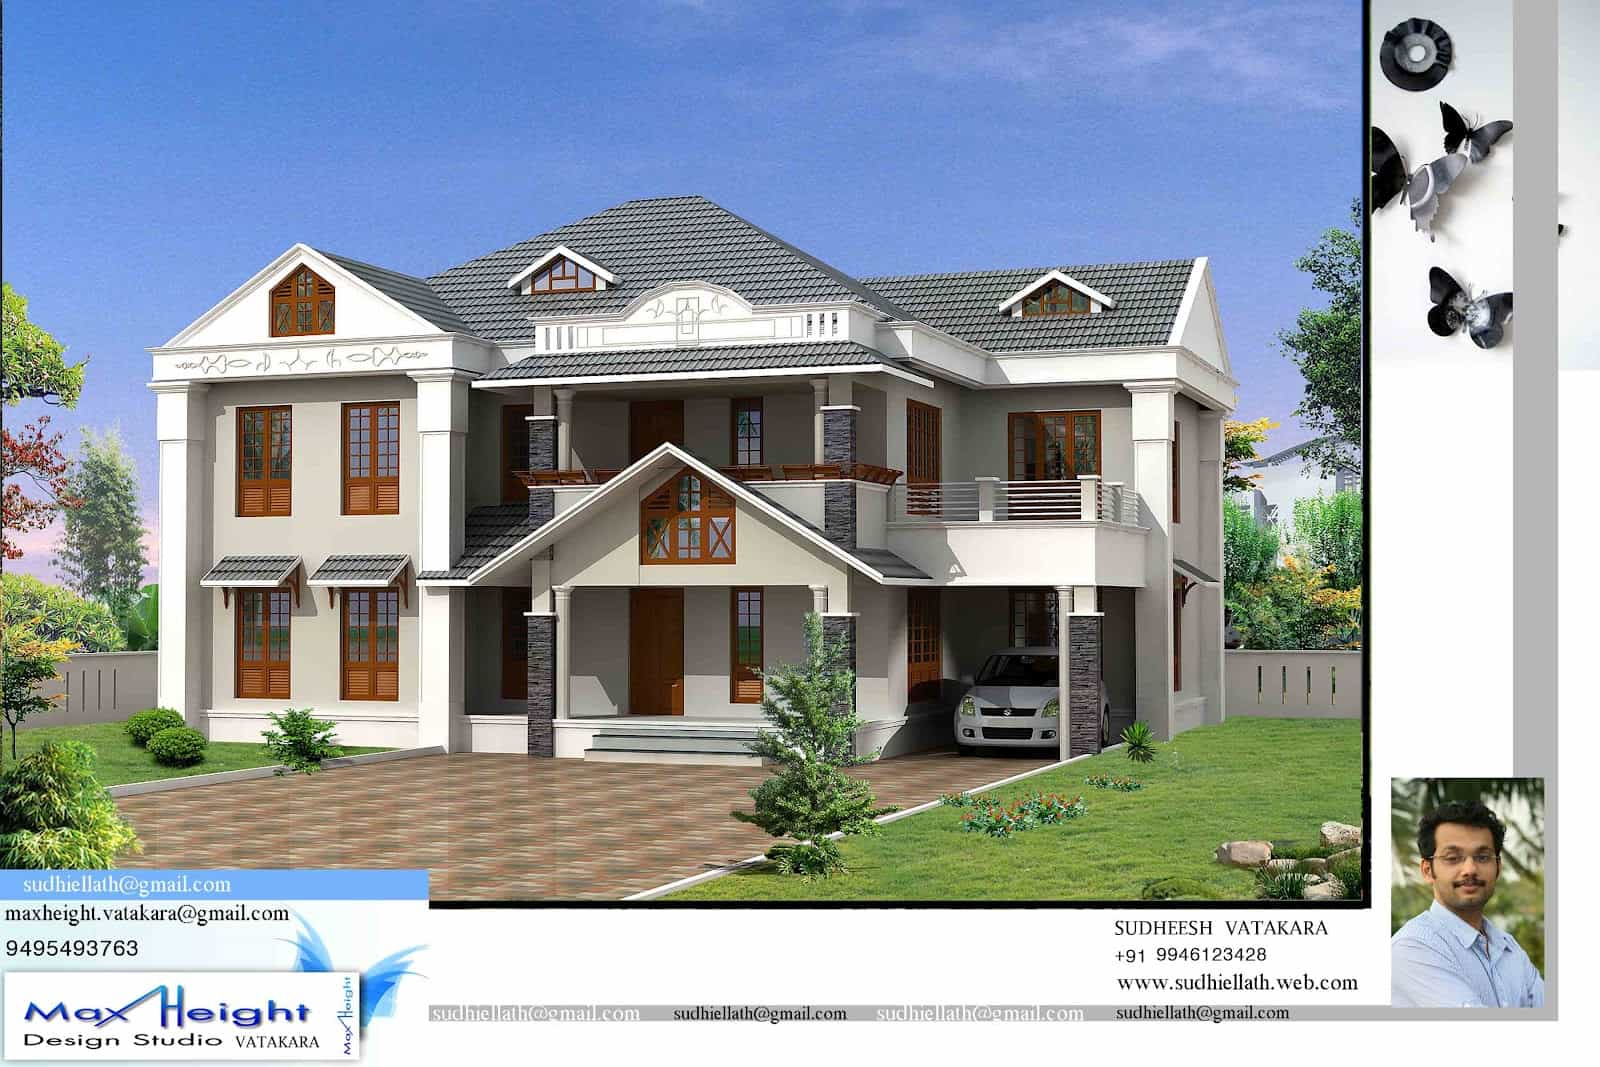 Single storey kerala house model with kerala house plans for New house plans kerala model